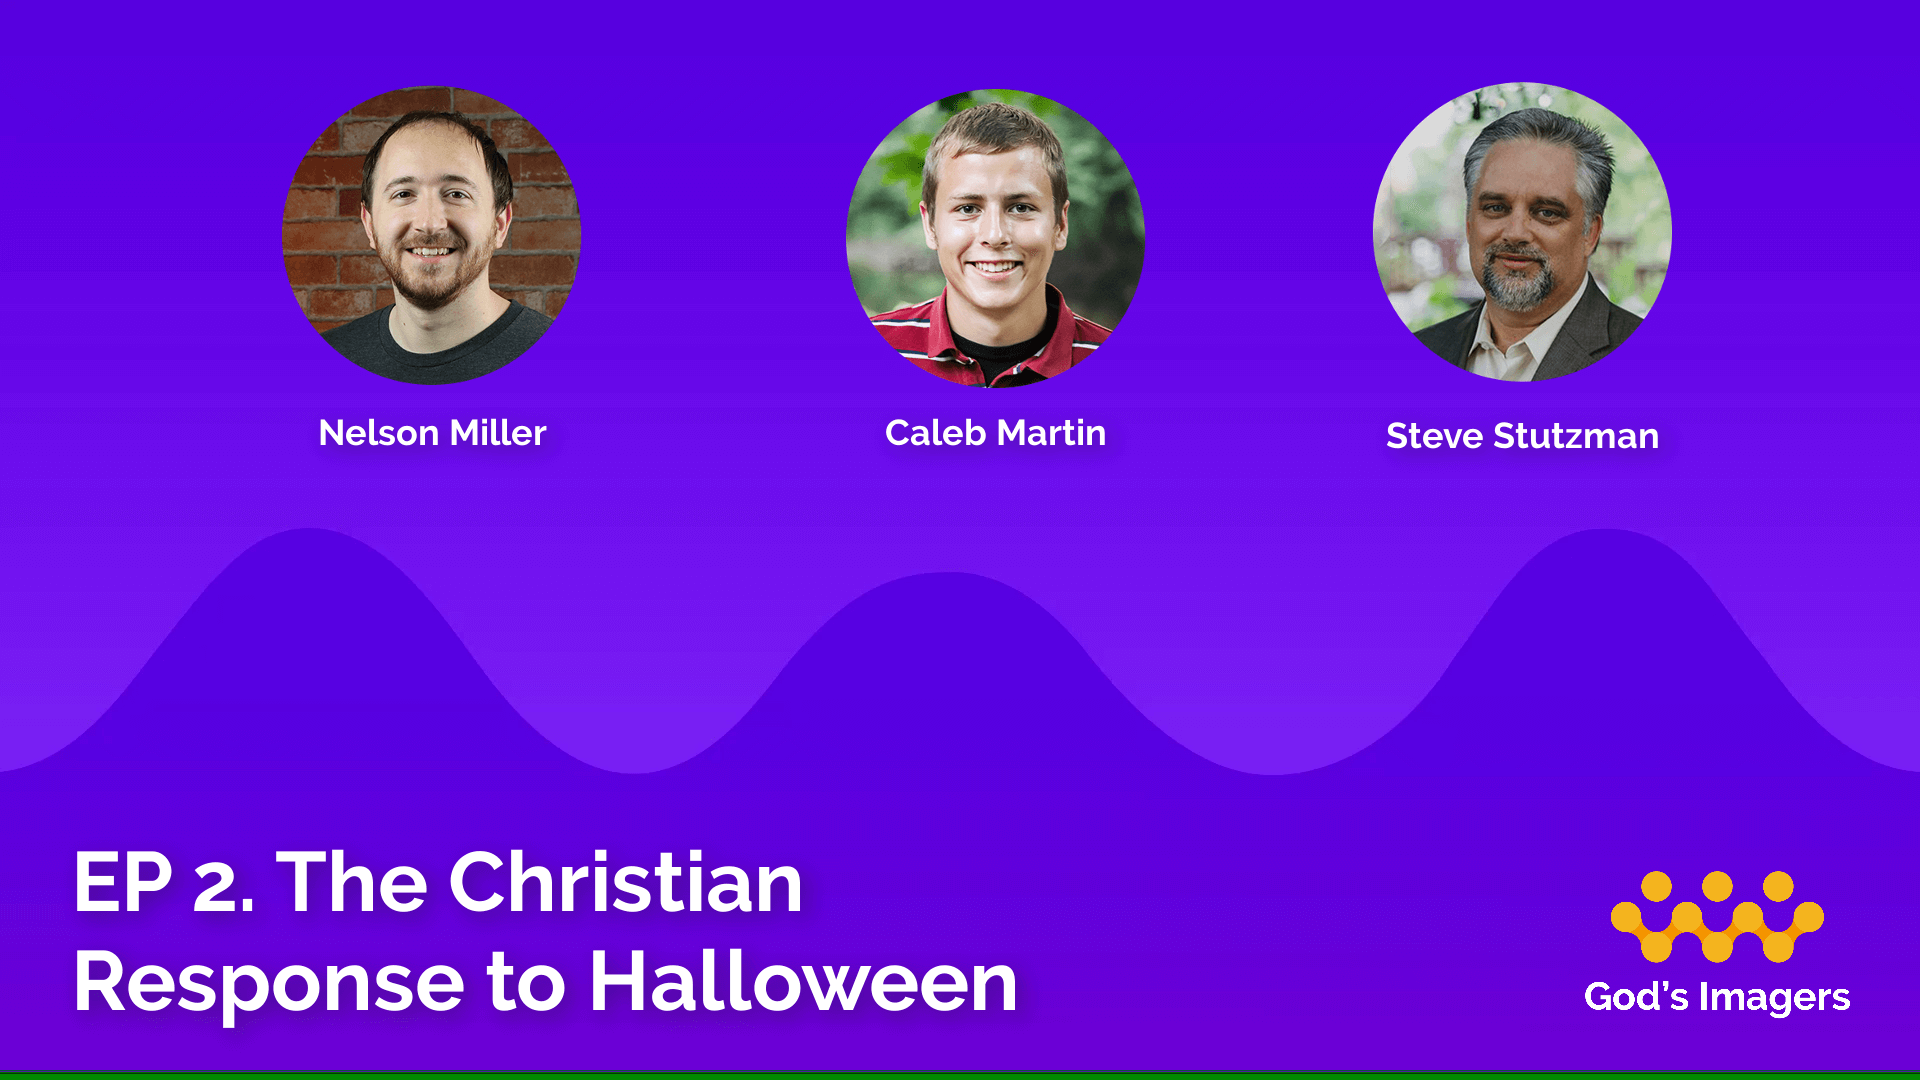 EP 2: The Christian Response To Halloween